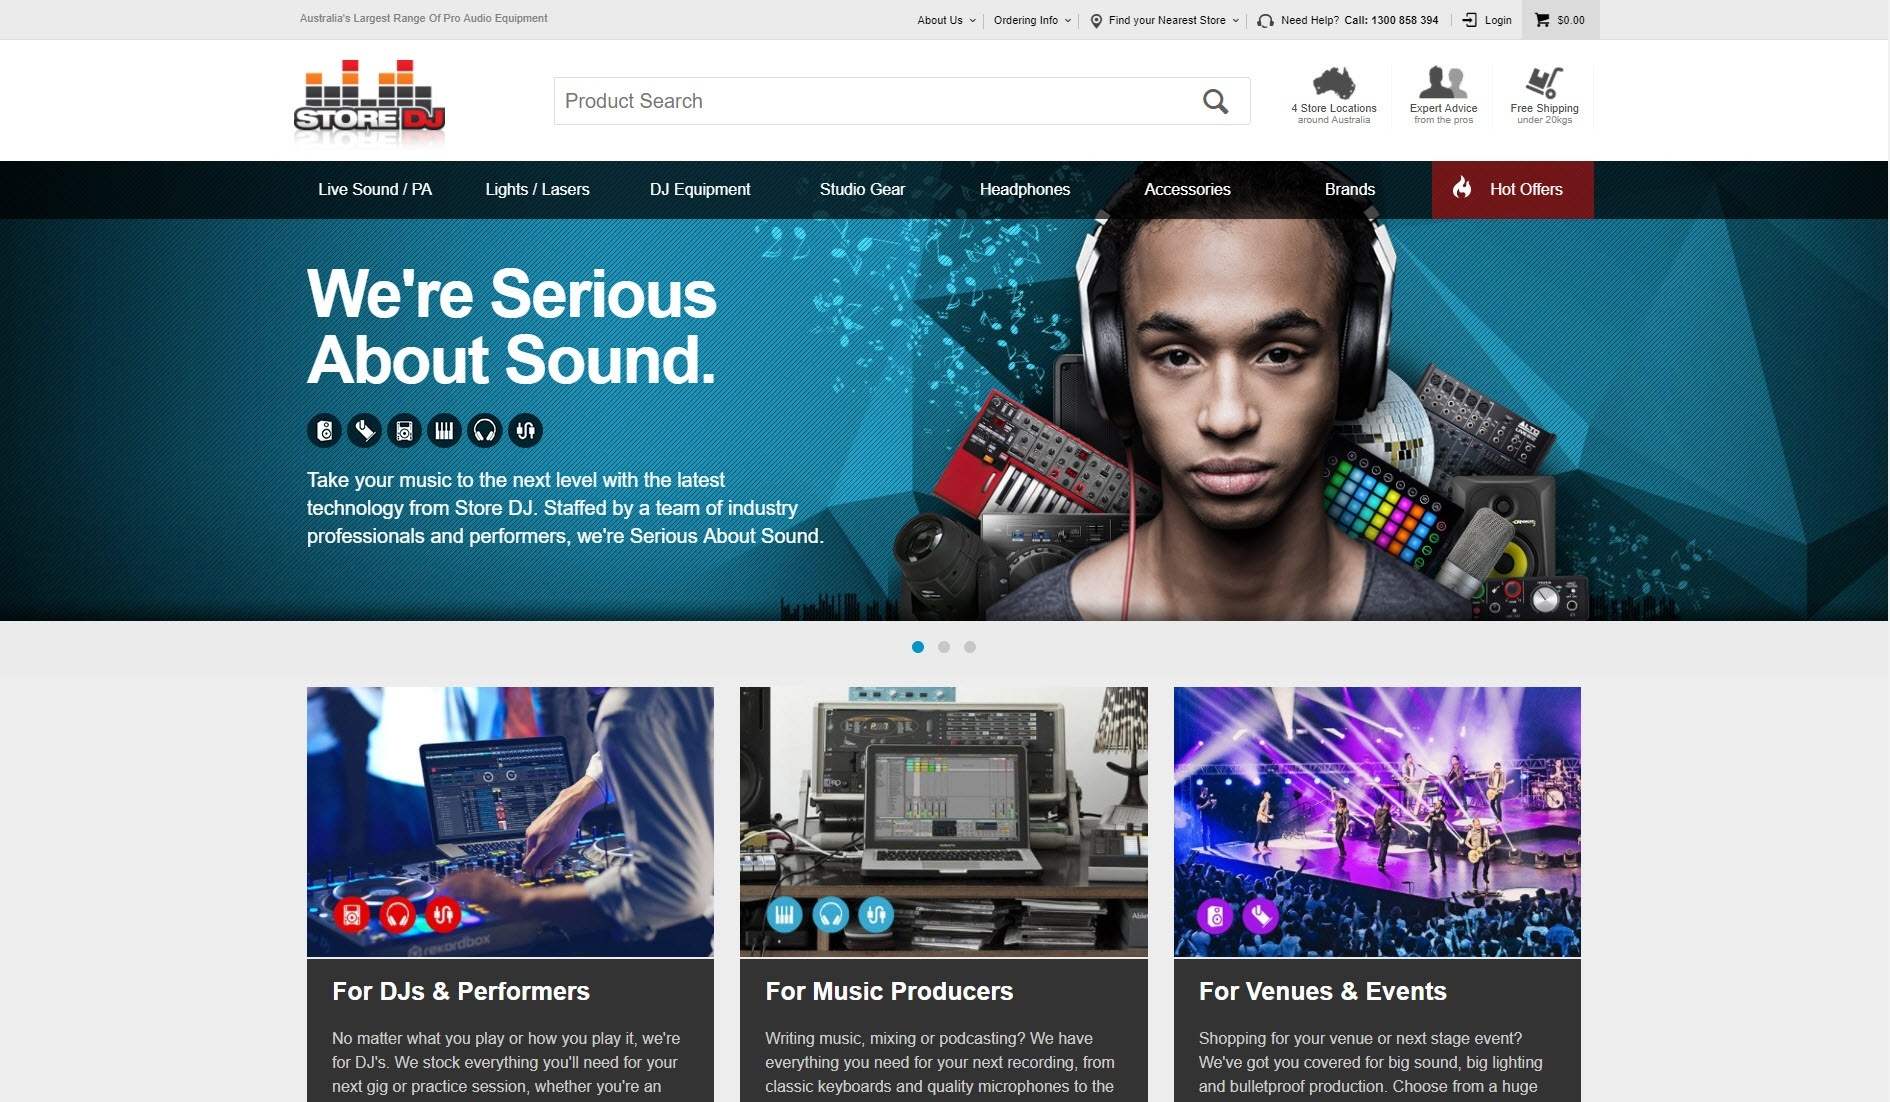 Image of Store DJ's website home page